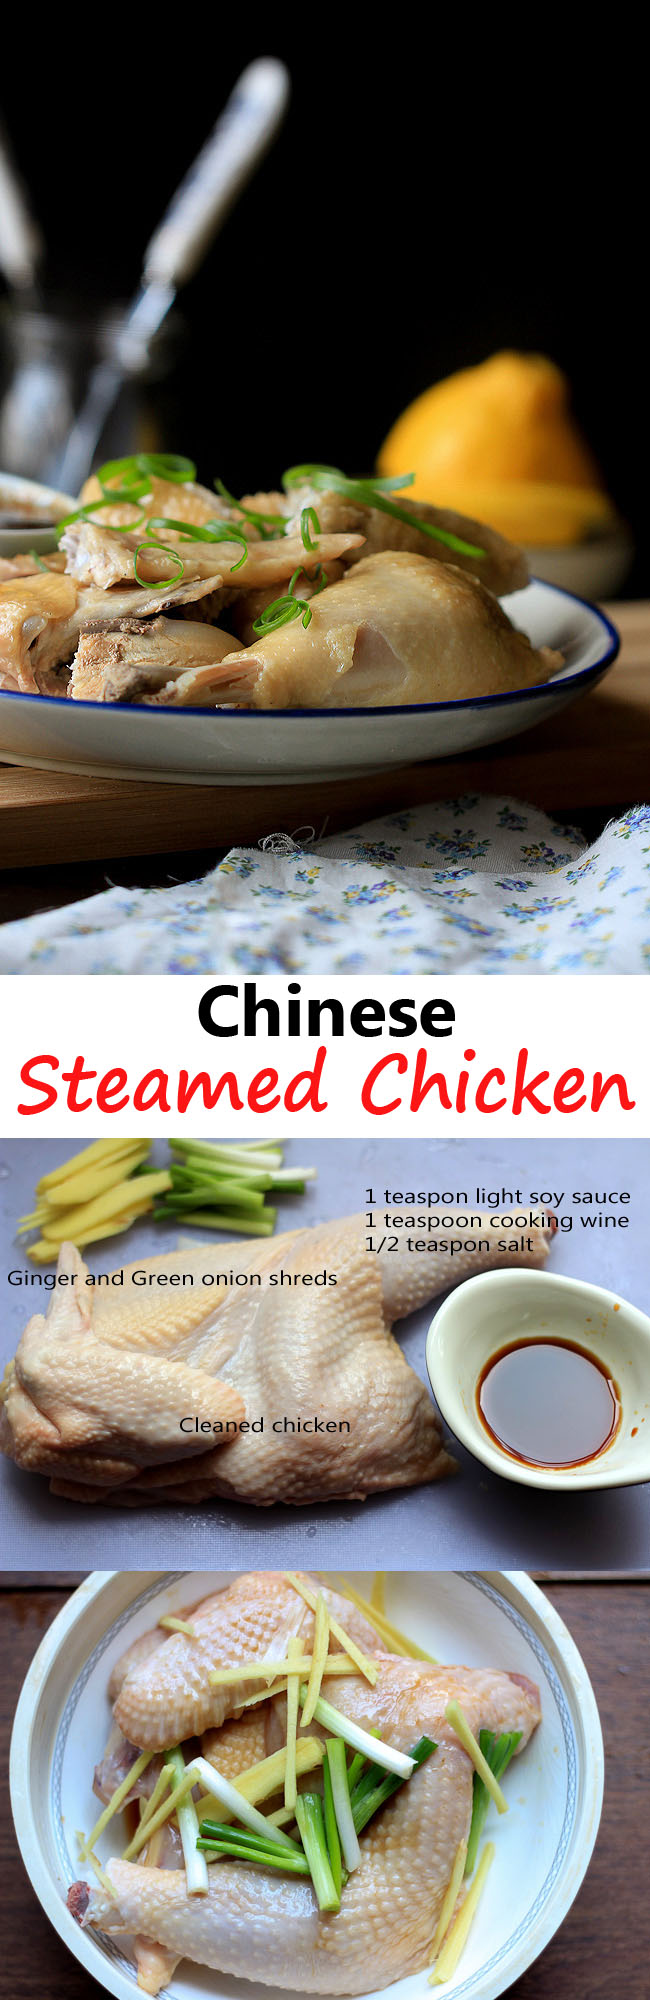 Chinese steamed chicken recipe food recipes and chinese recipes chinese steamed chicken forumfinder Image collections